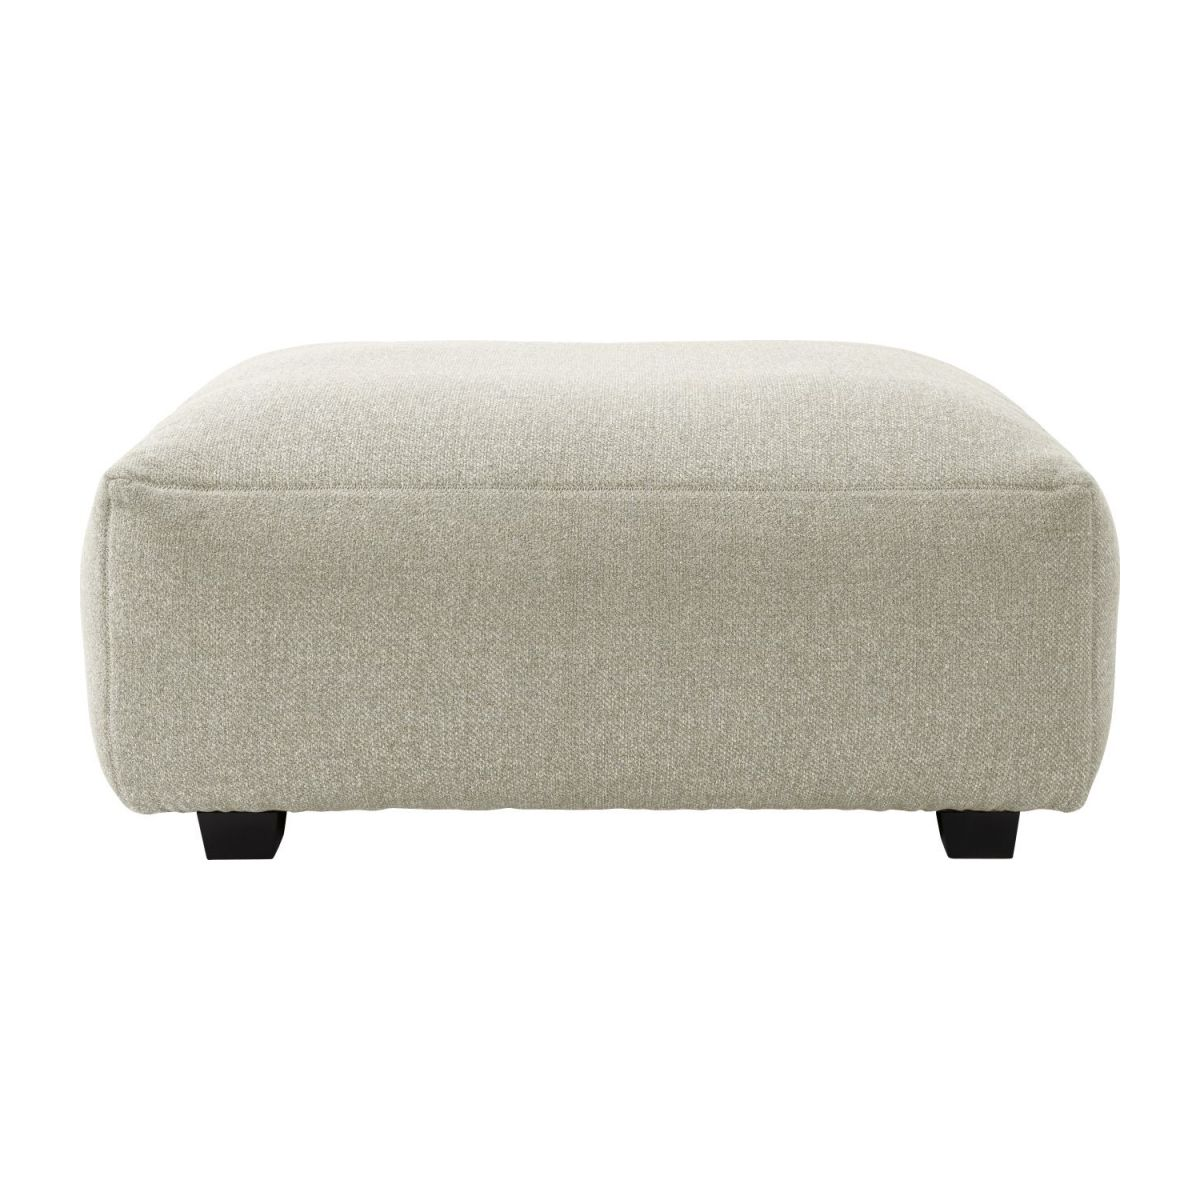 Footstool in Lecce fabric, nature n°2